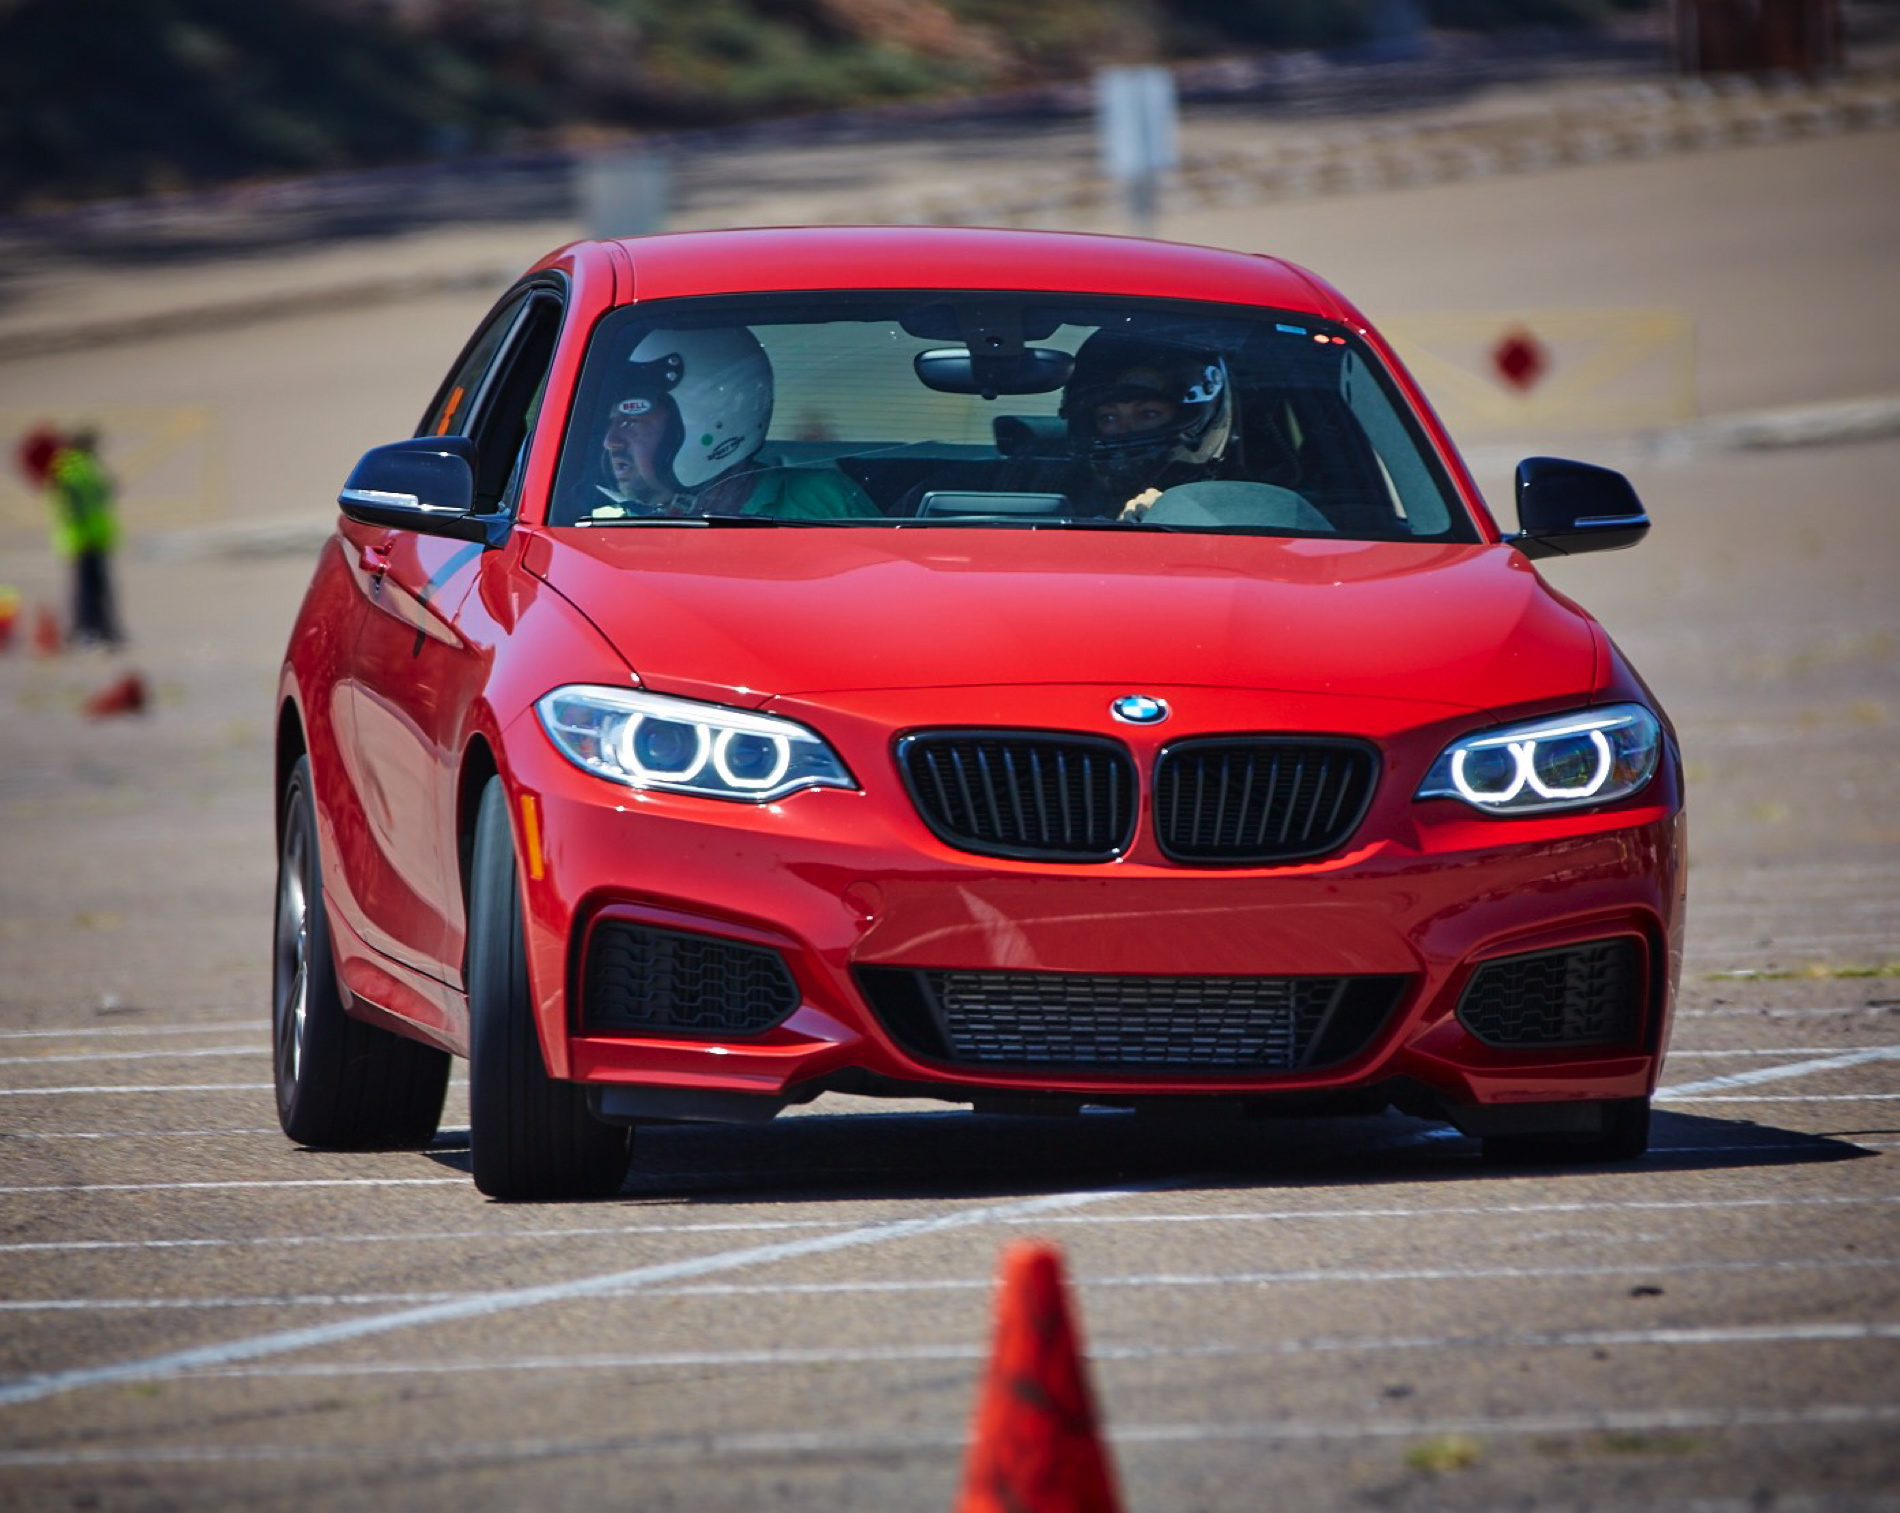 Bmw M235 The New Clic Images 08 750x597